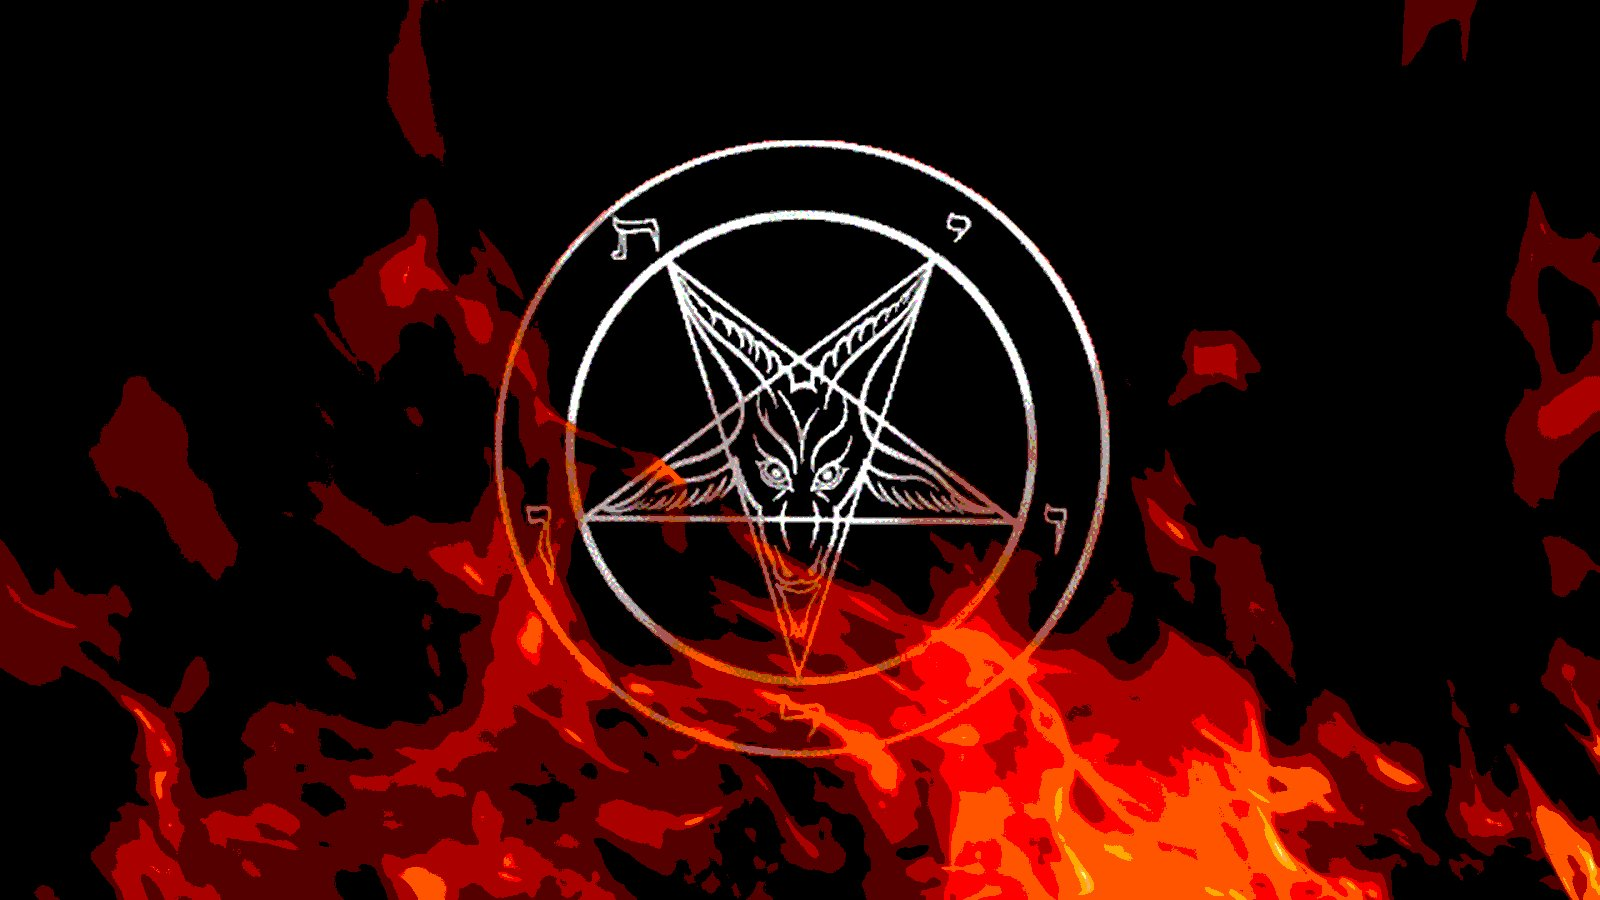 dark evil occult satanic satan demon wallpaper 1600x900 696187